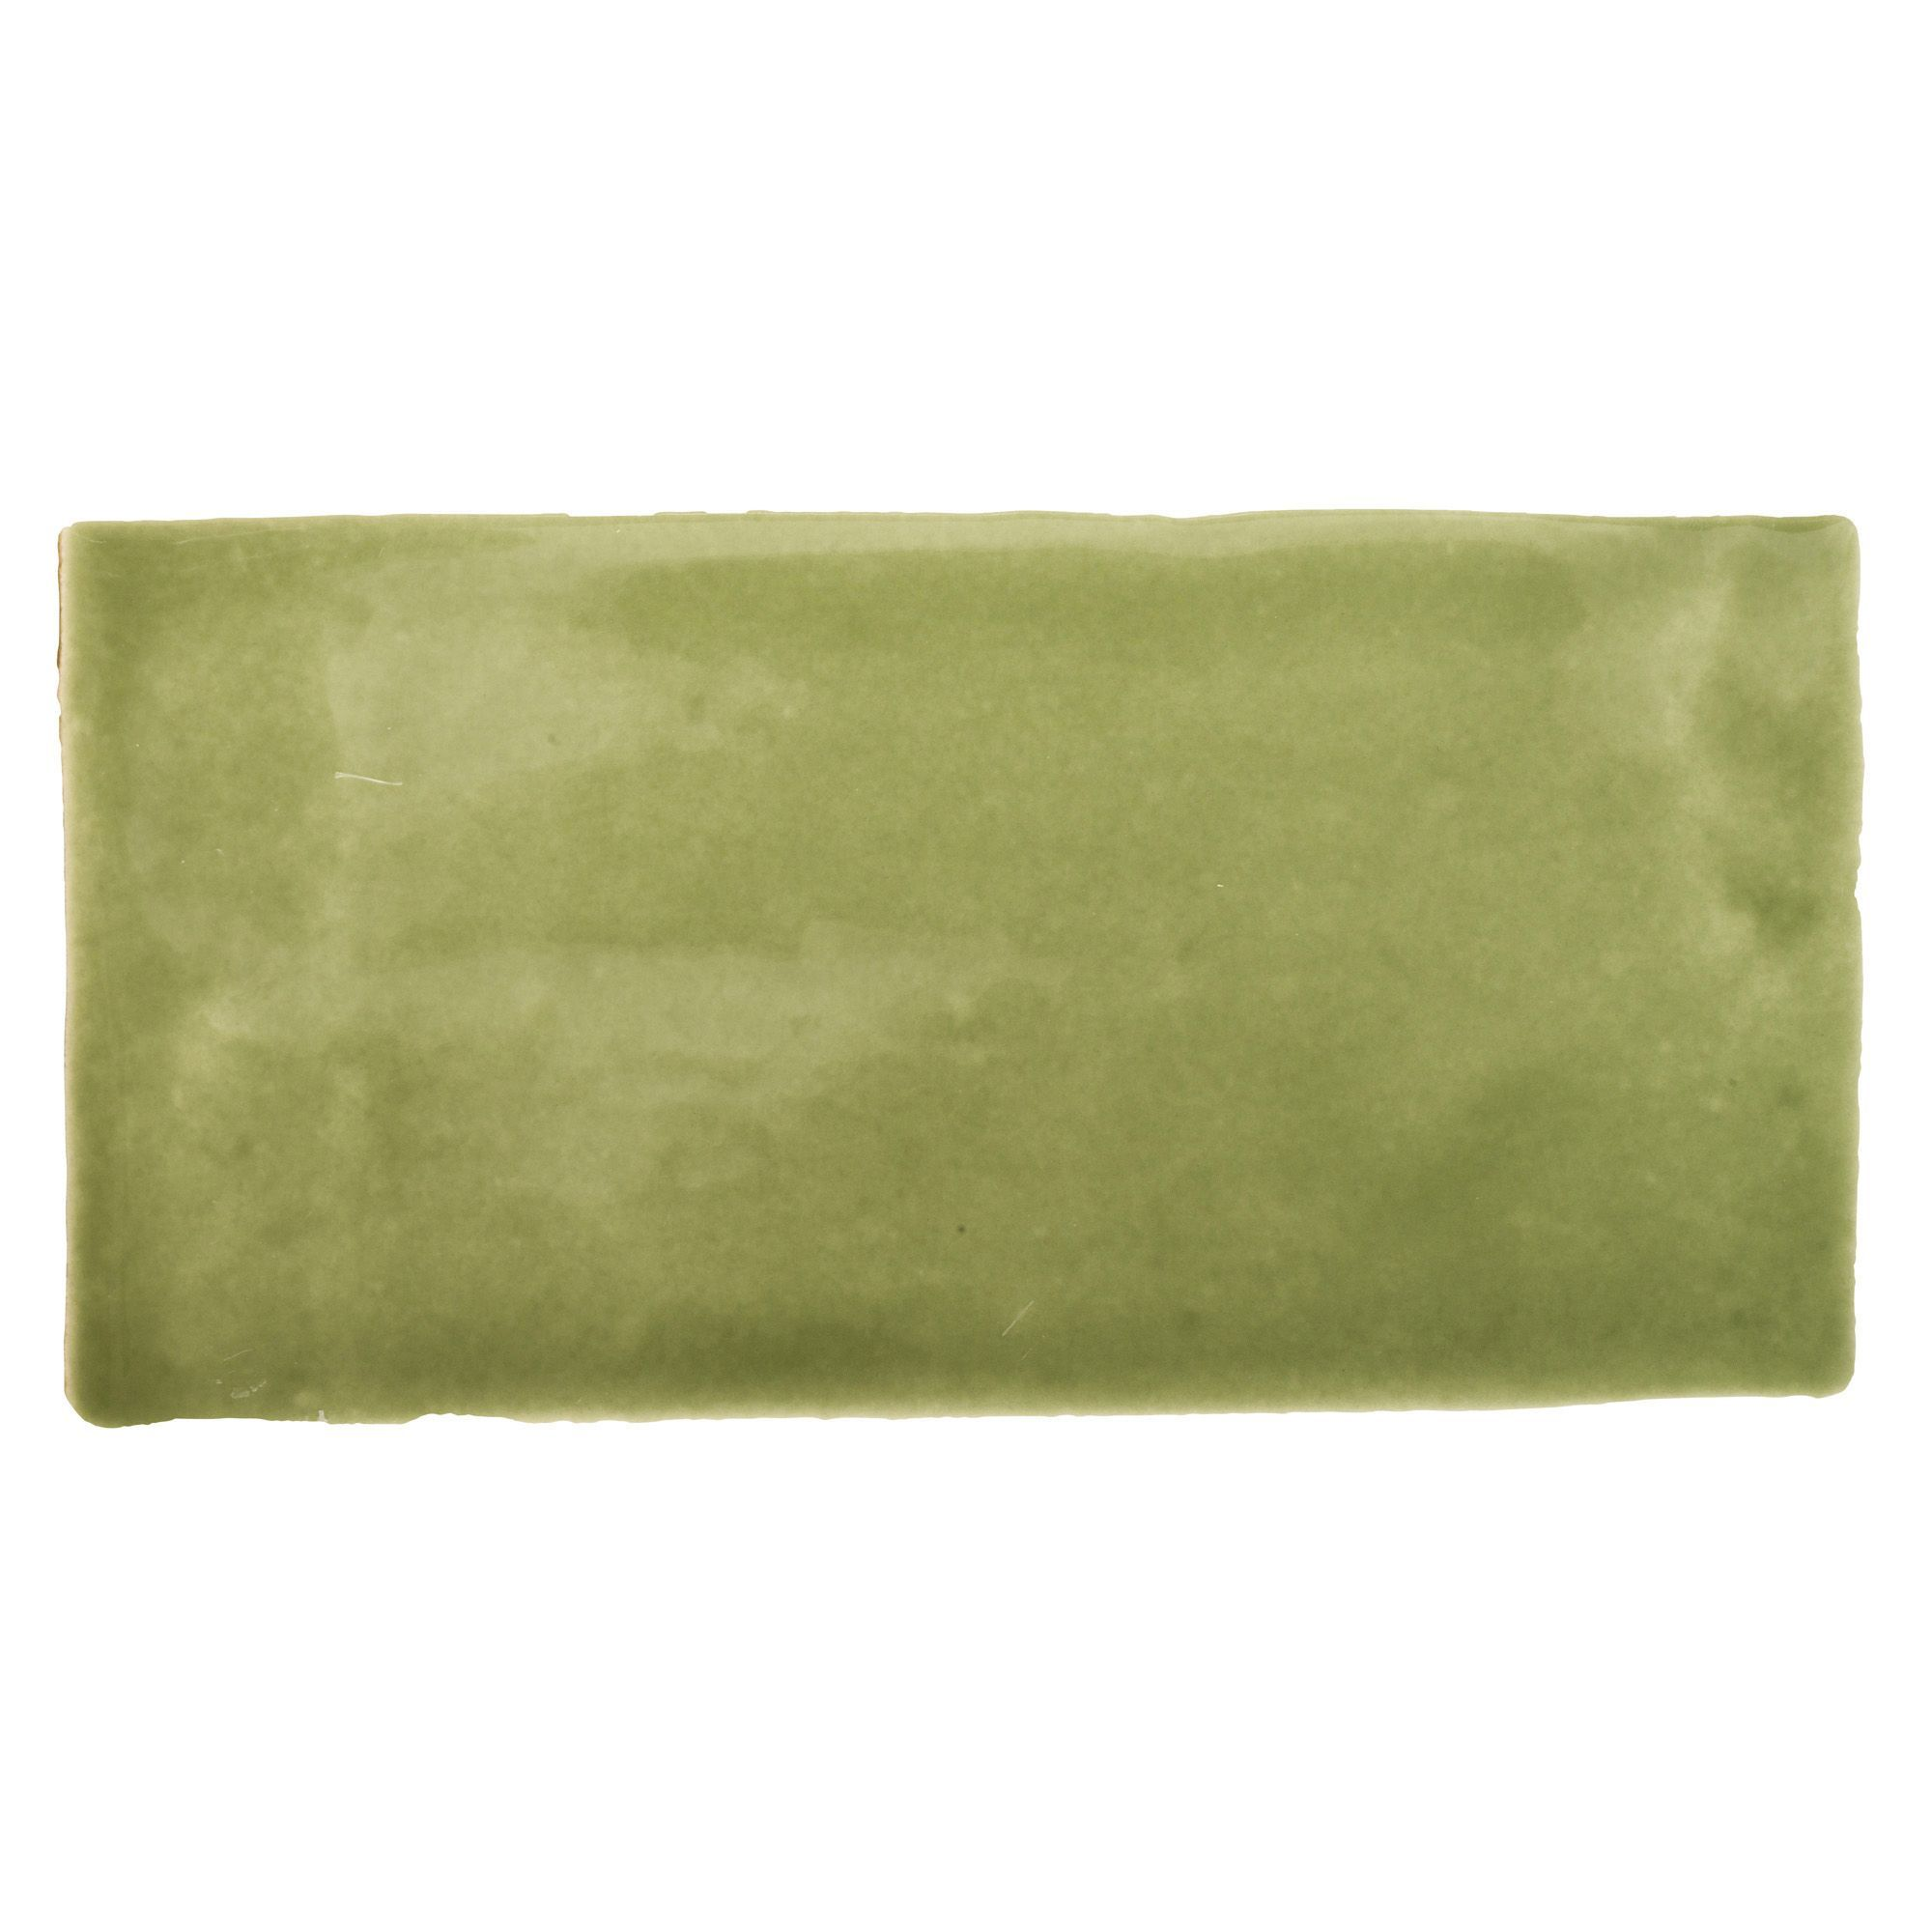 Bq Ceramic Kitchen Floor Tiles Padstow Olive Ceramic Wall Tile Pack Of 44 L150mm W75mm